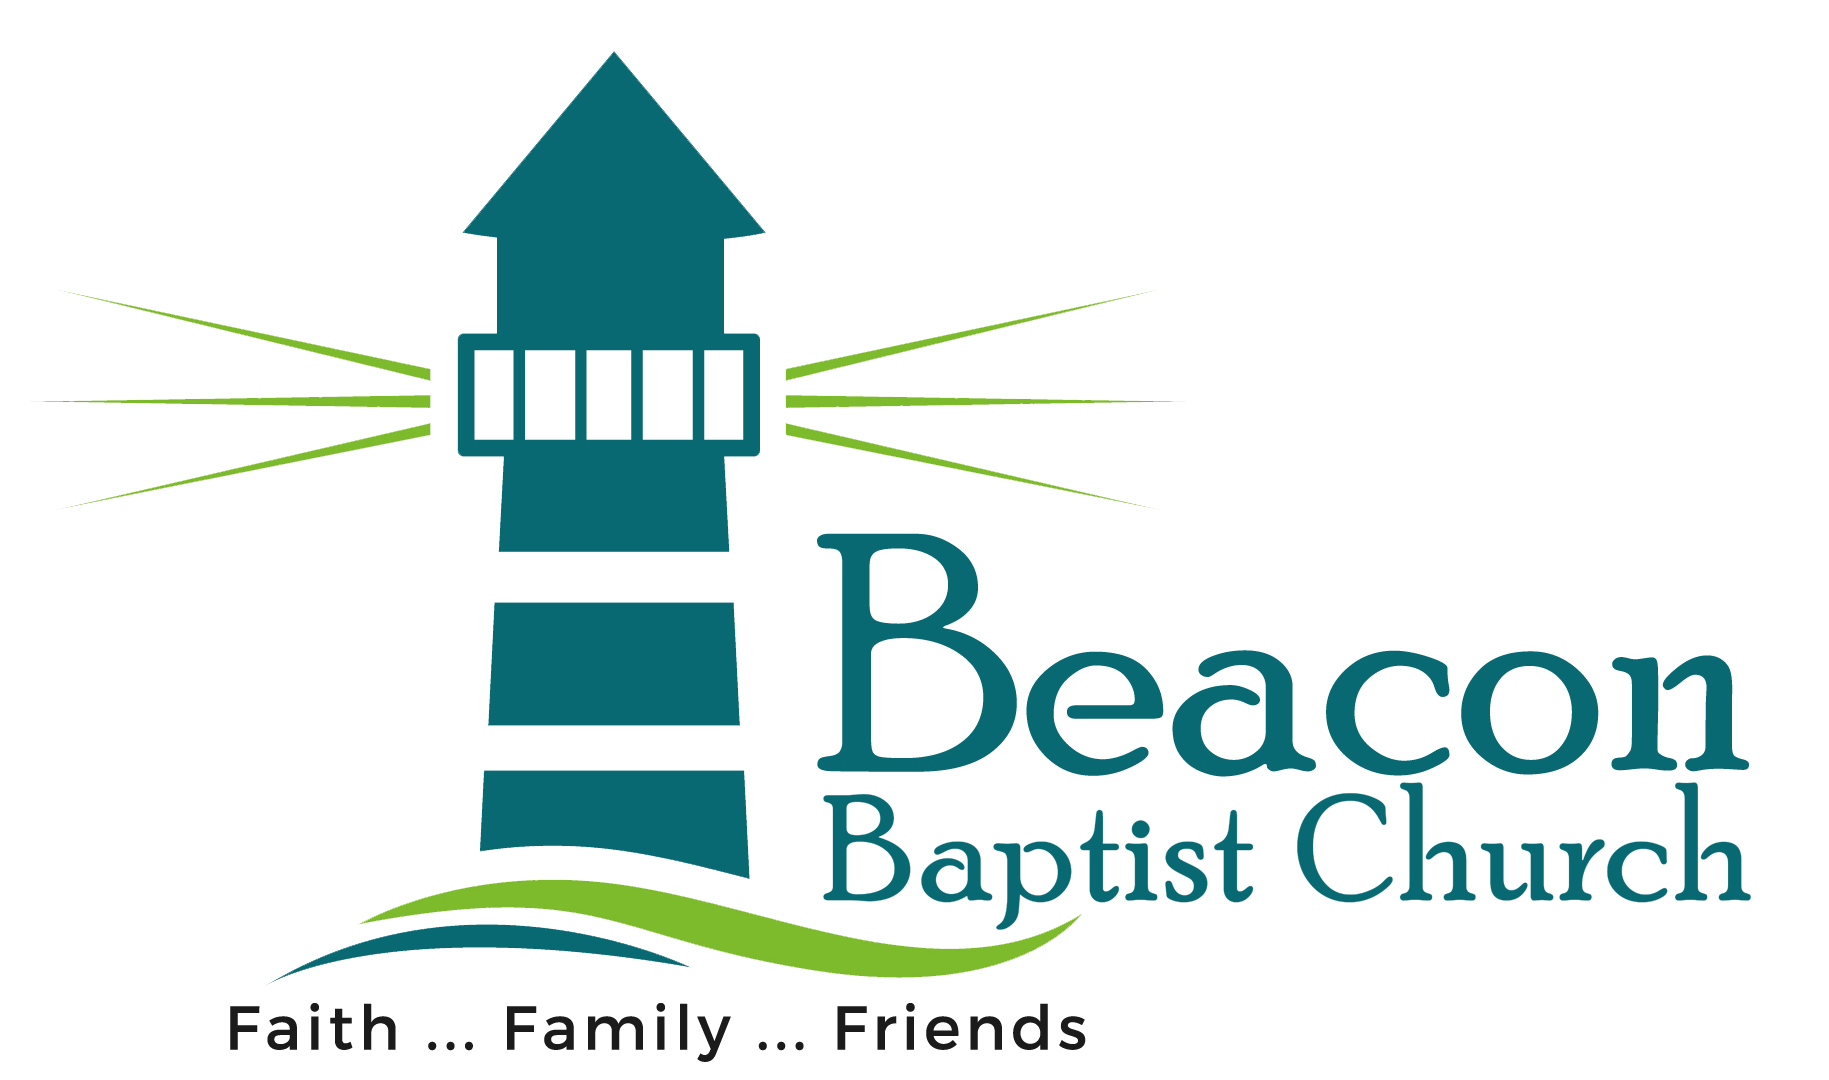 Beacon Baptist